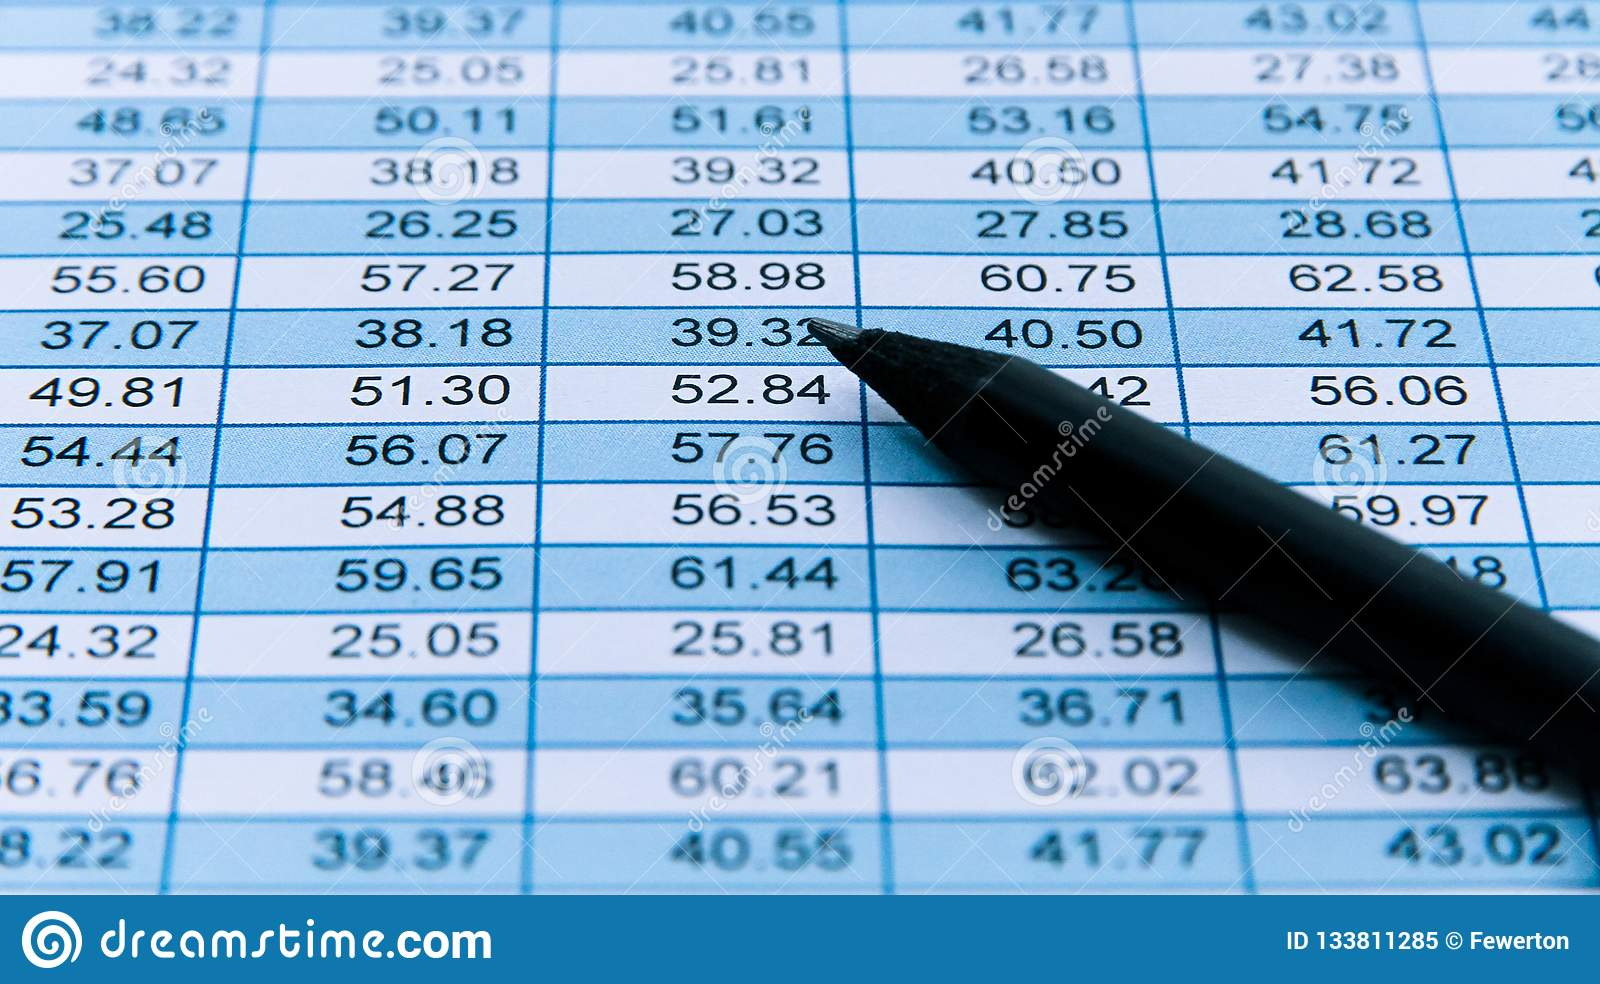 Pleasing Black Pencil Macro Over A Financial Spreadsheet Numerical Download Free Architecture Designs Scobabritishbridgeorg